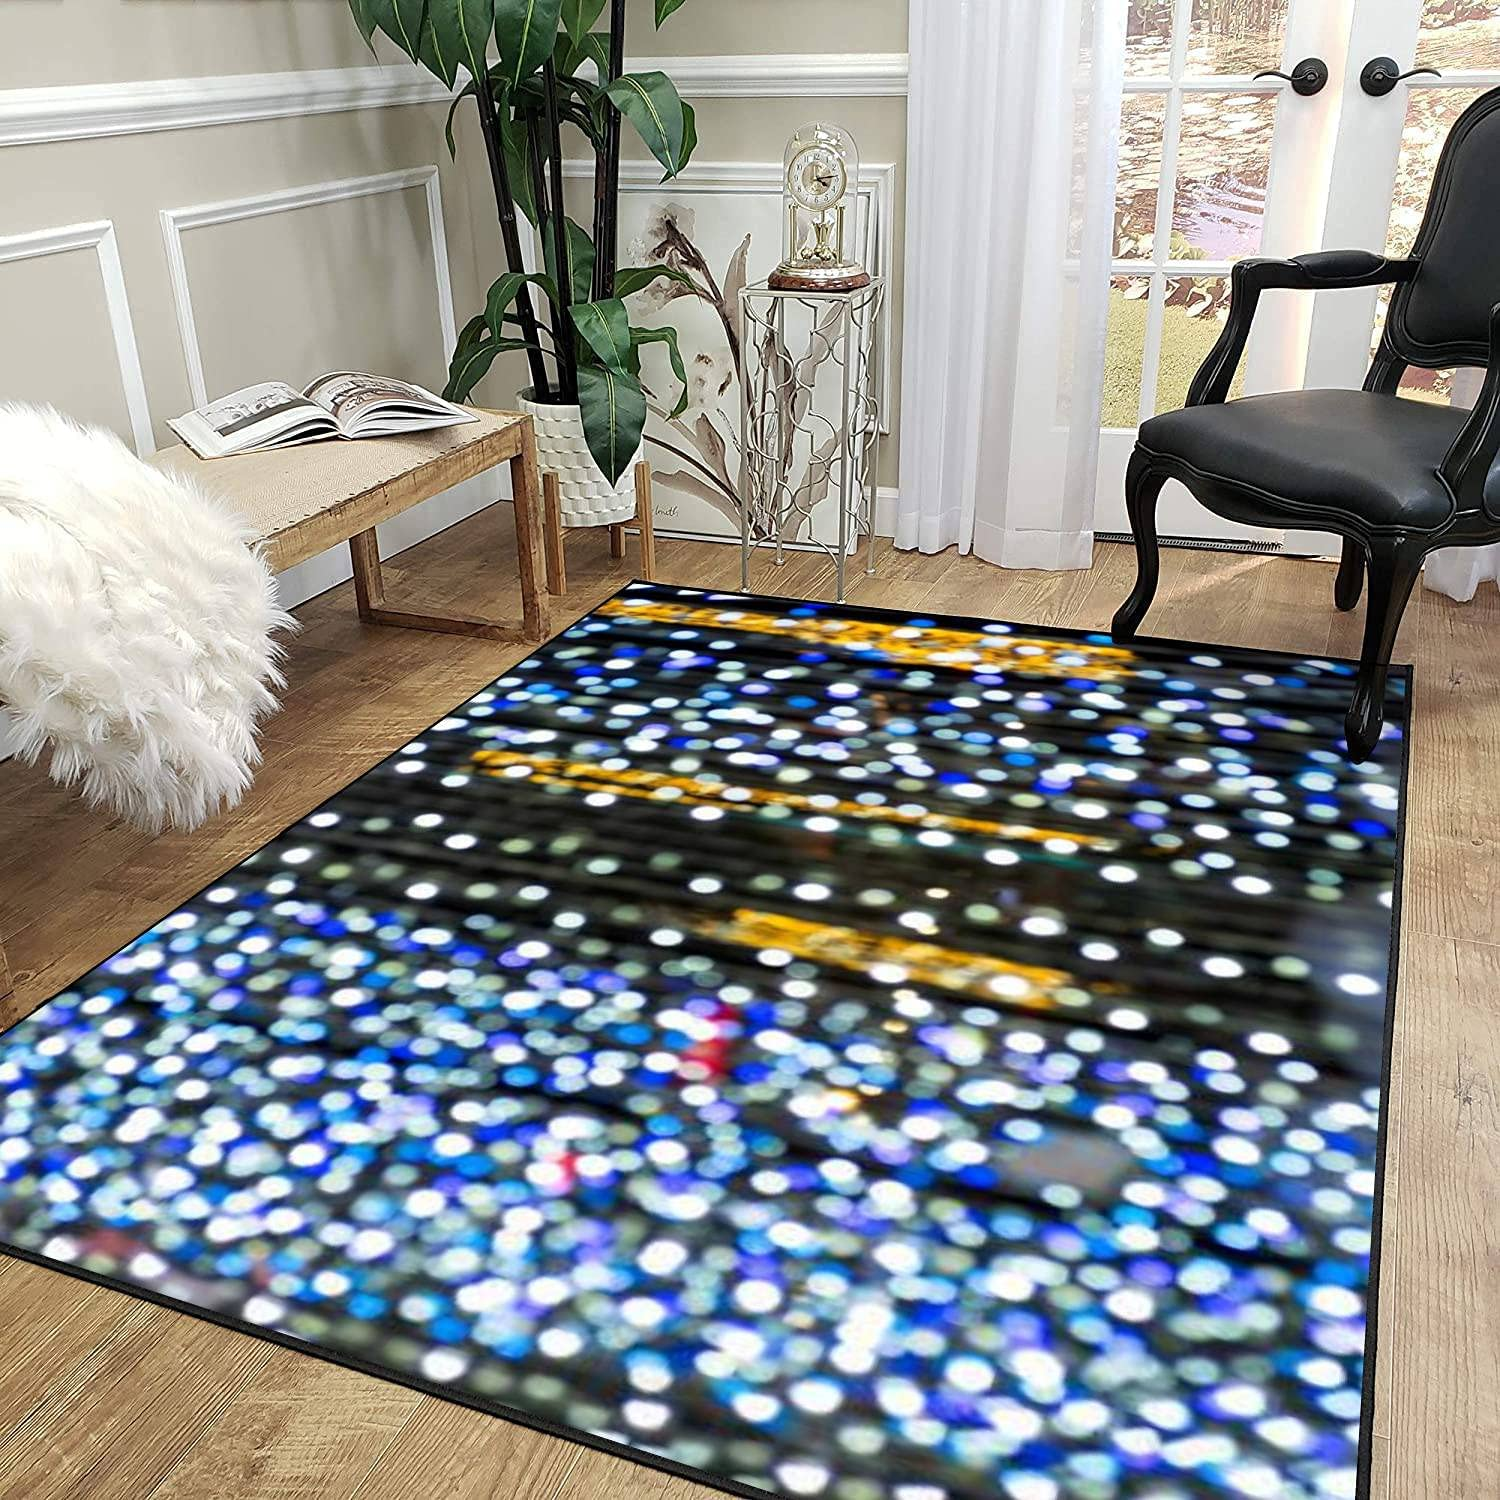 Rug Pad Lighting Illumination and Back Bokeh Quality inspection Max 40% OFF Items Decoration as